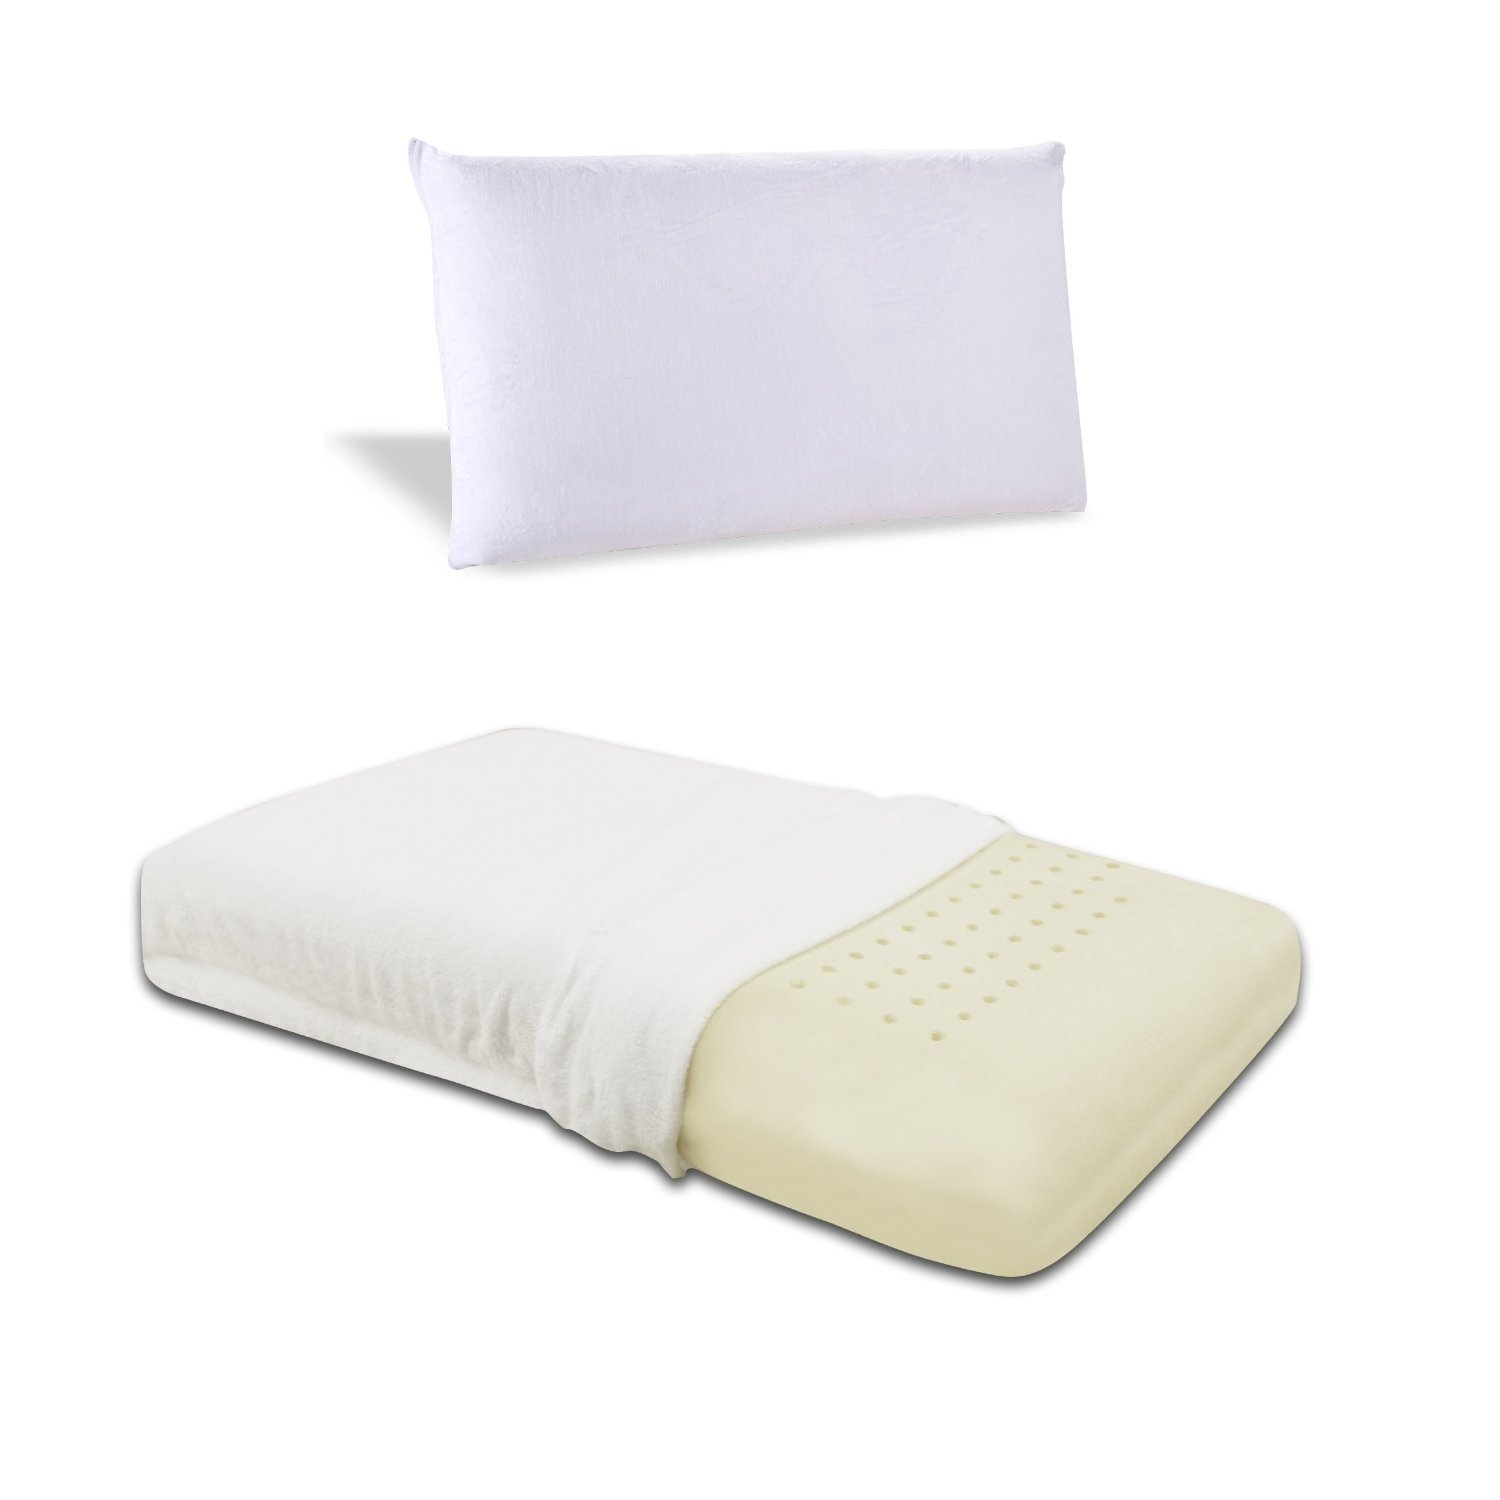 Firm Memory Foam Pillow Queen Size Ventilated Memory Foam Pillow With Cover Medium Firm